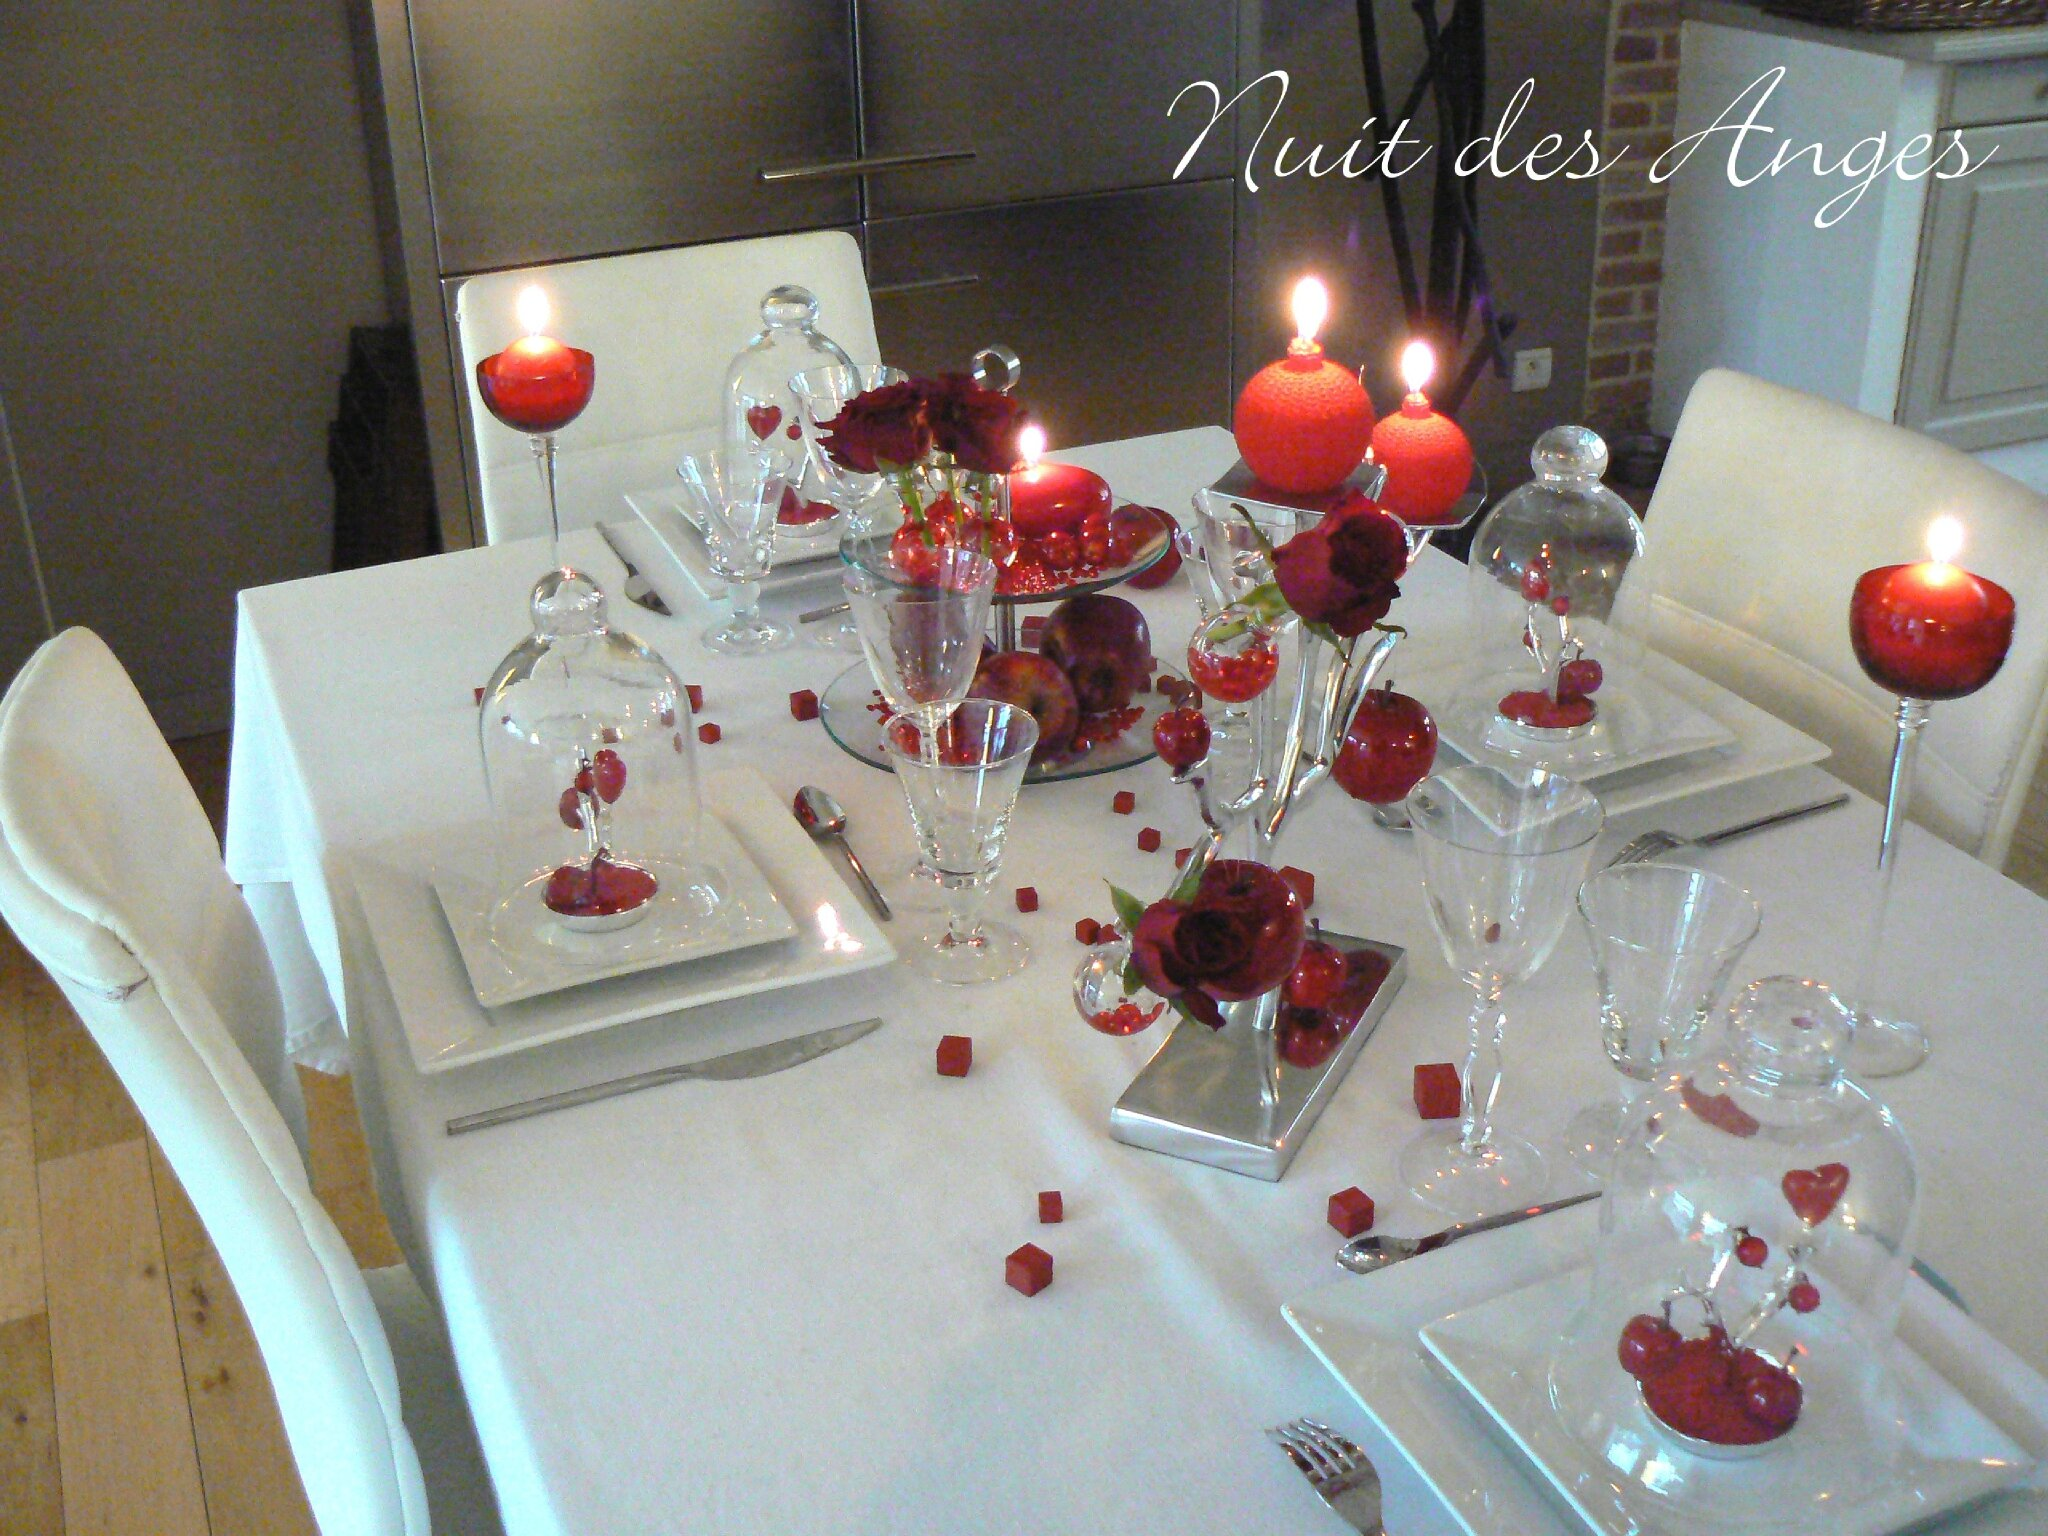 nuit des anges d coratrice de mariage d coration de table rouge pomme d 39 amour 002 photo de. Black Bedroom Furniture Sets. Home Design Ideas